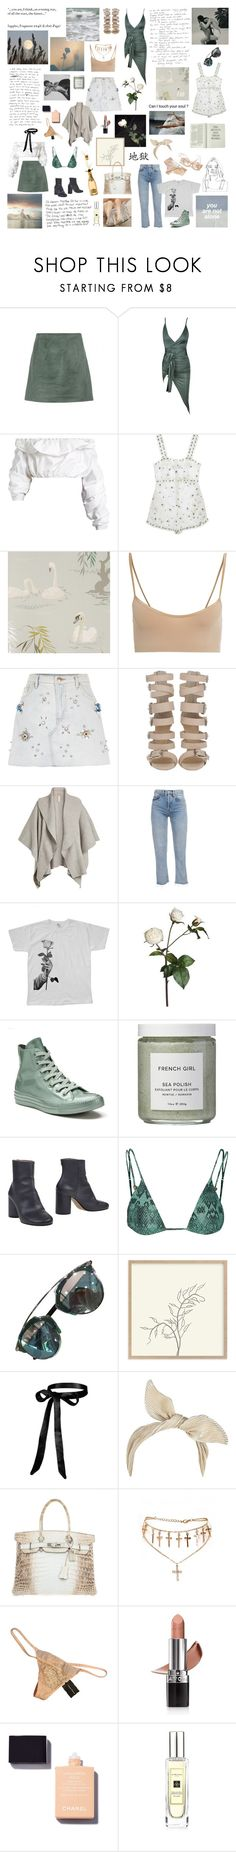 """""""Only those who will risk going too far can possibly find out how far one can go."""" by winchestery ❤ liked on Polyvore featuring Mon Cheri, Acne Studios, E L L E R Y, Sretsis, Nina Campbell, Hanro, River Island, Burberry, We Are Still Bold and Beautiful and Sia"""